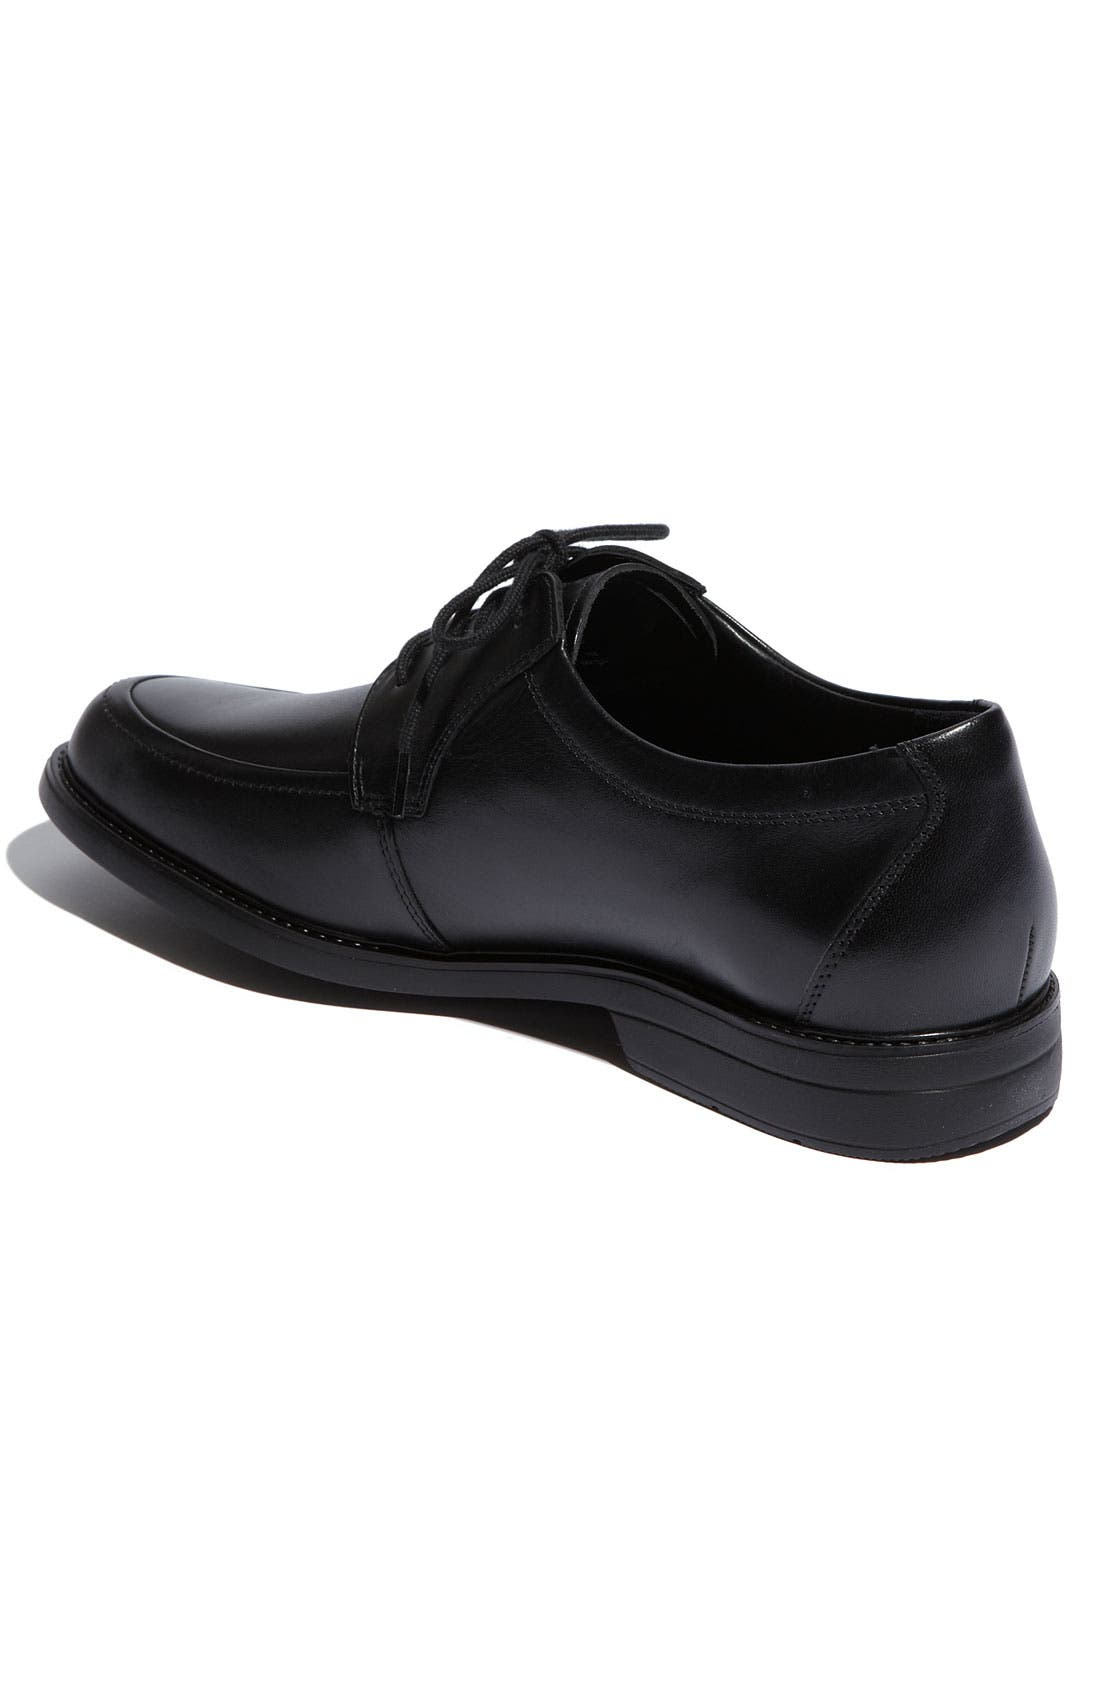 Alternate Image 2  - Mephisto 'Gusto' Oxford (Men)